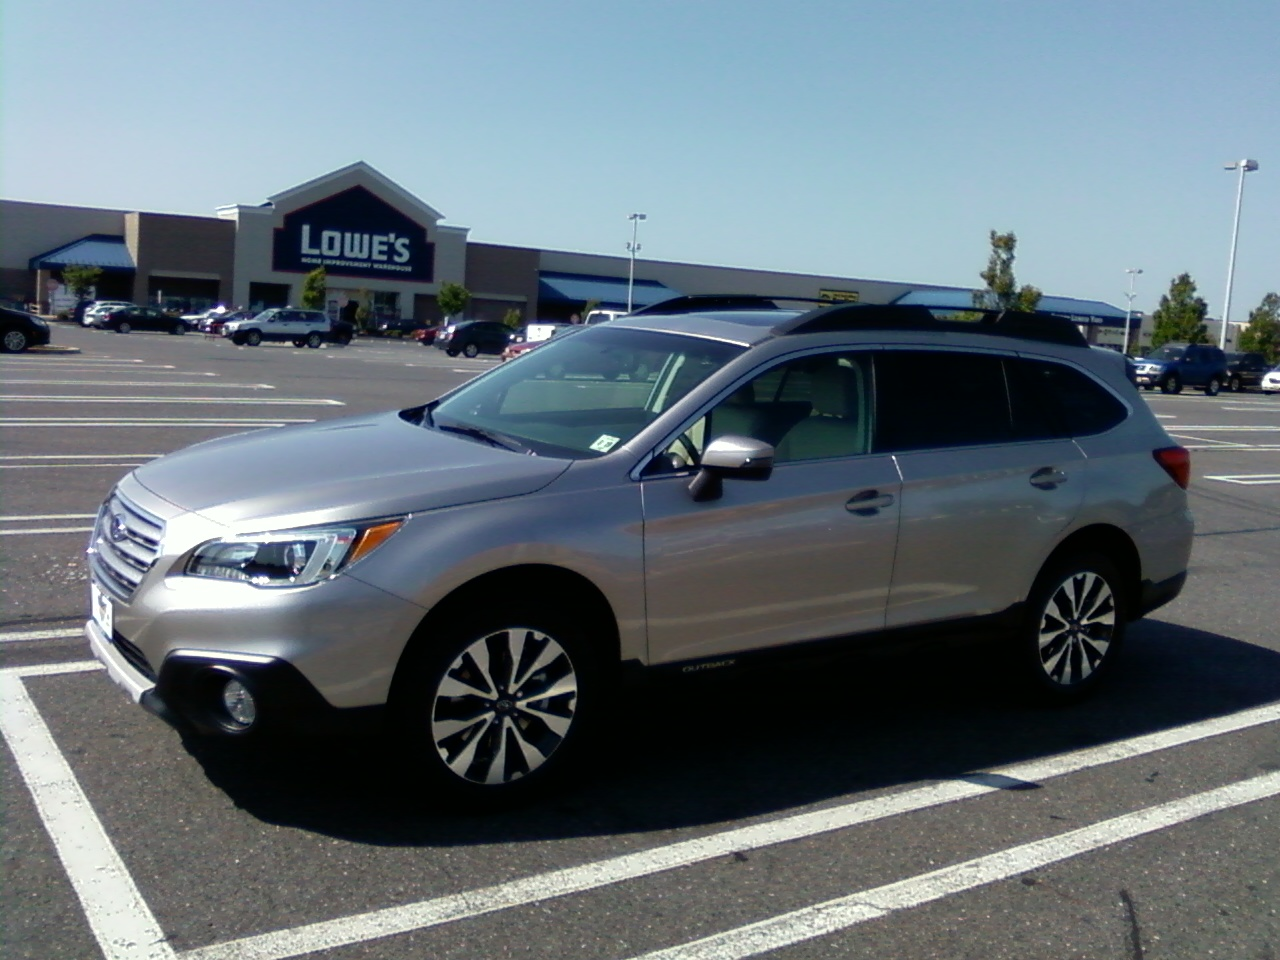 Forester Vs Outback >> Tungsten Metallic vs. Burnished Bronze Metallic - Subaru Outback - Subaru Outback Forums